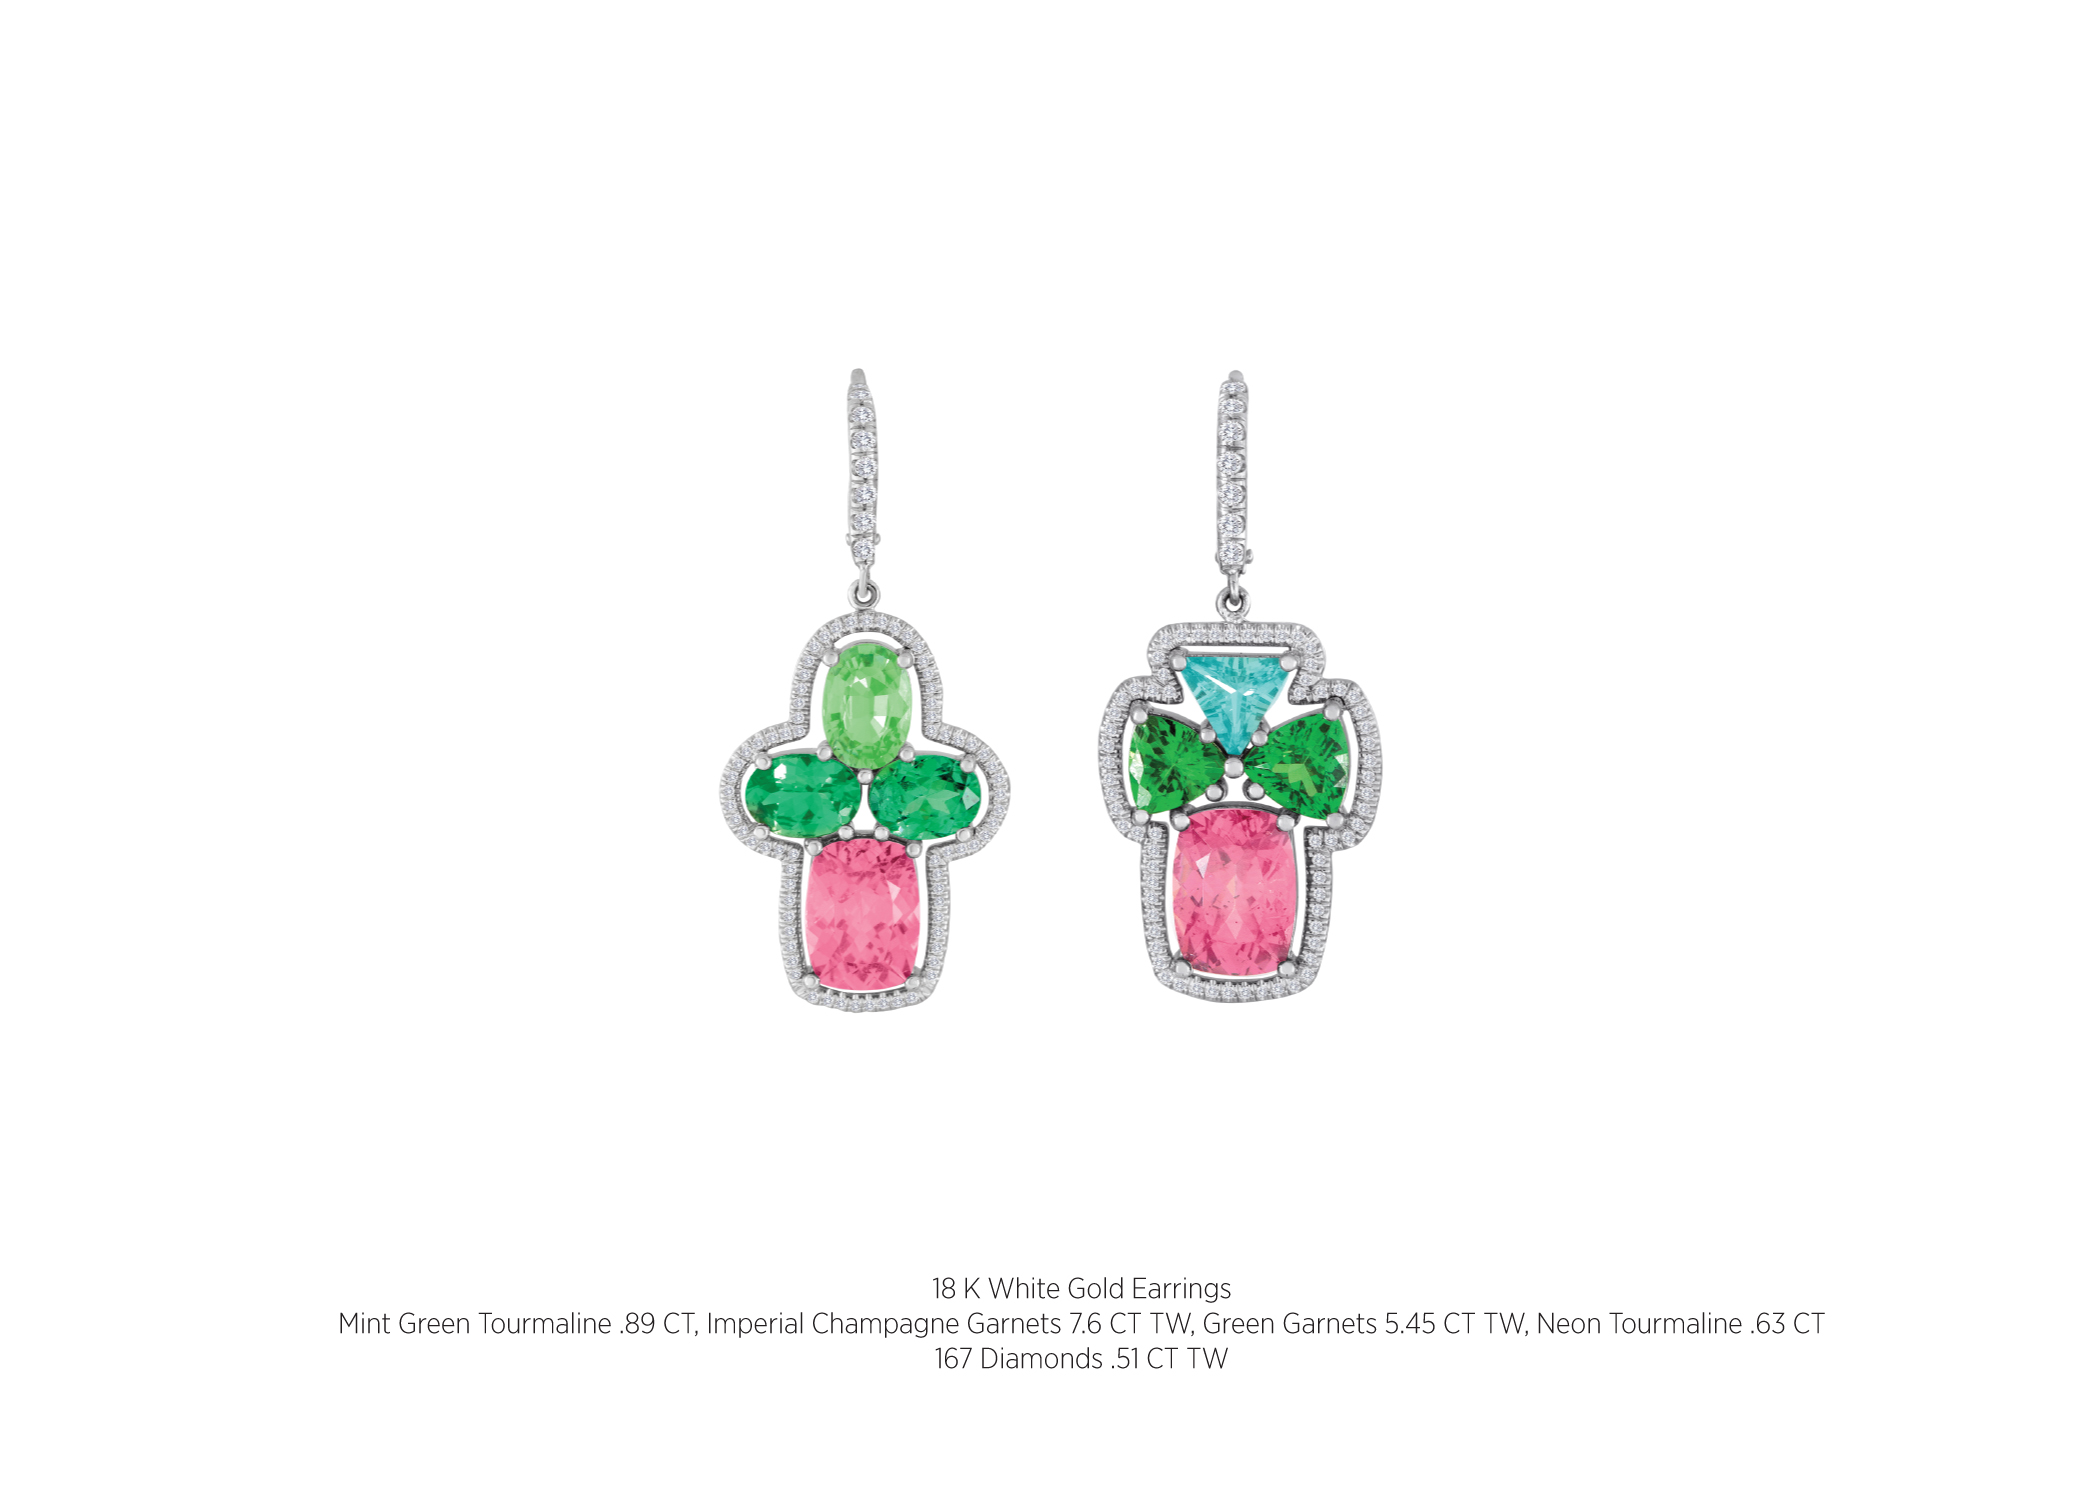 18 K White Gold Earrings Mint Green Tourmaline 89 Ct Imperial Champagne  Garnets 76 Ct Tw Green Garnets 545 Ct Tw Neon Tourmaline 63 Ct